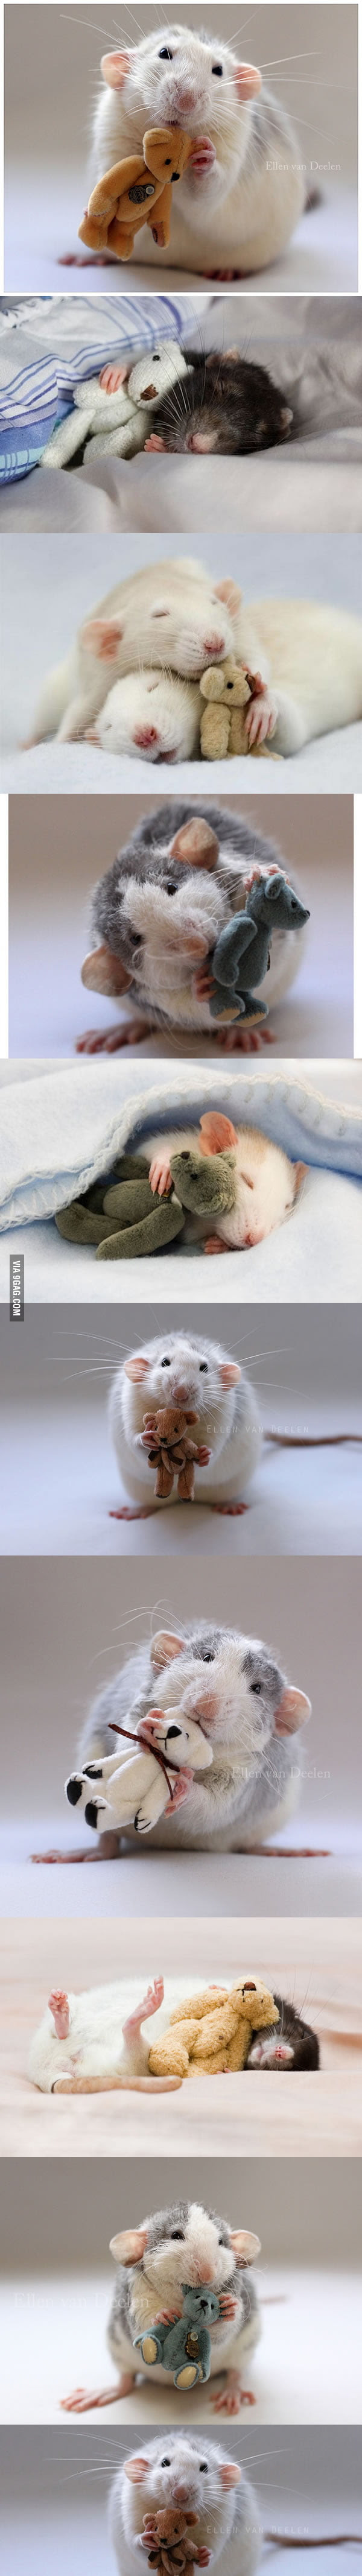 Rats With Teddy Bears